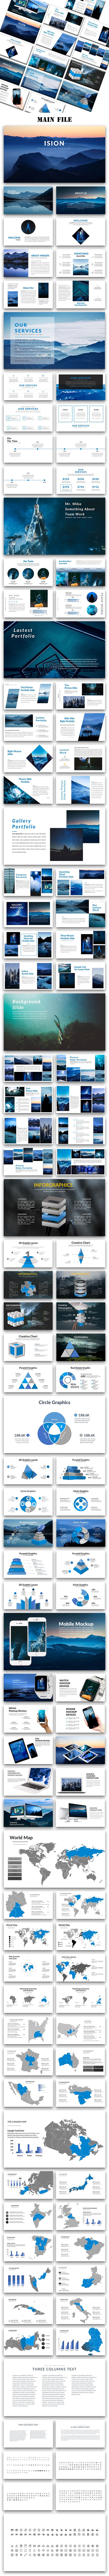 Ision - Creative Keynote Template - Creative #Keynote Templates Download here: https://graphicriver.net/item/ision-creative-keynote-template/19674870?ref=alena994